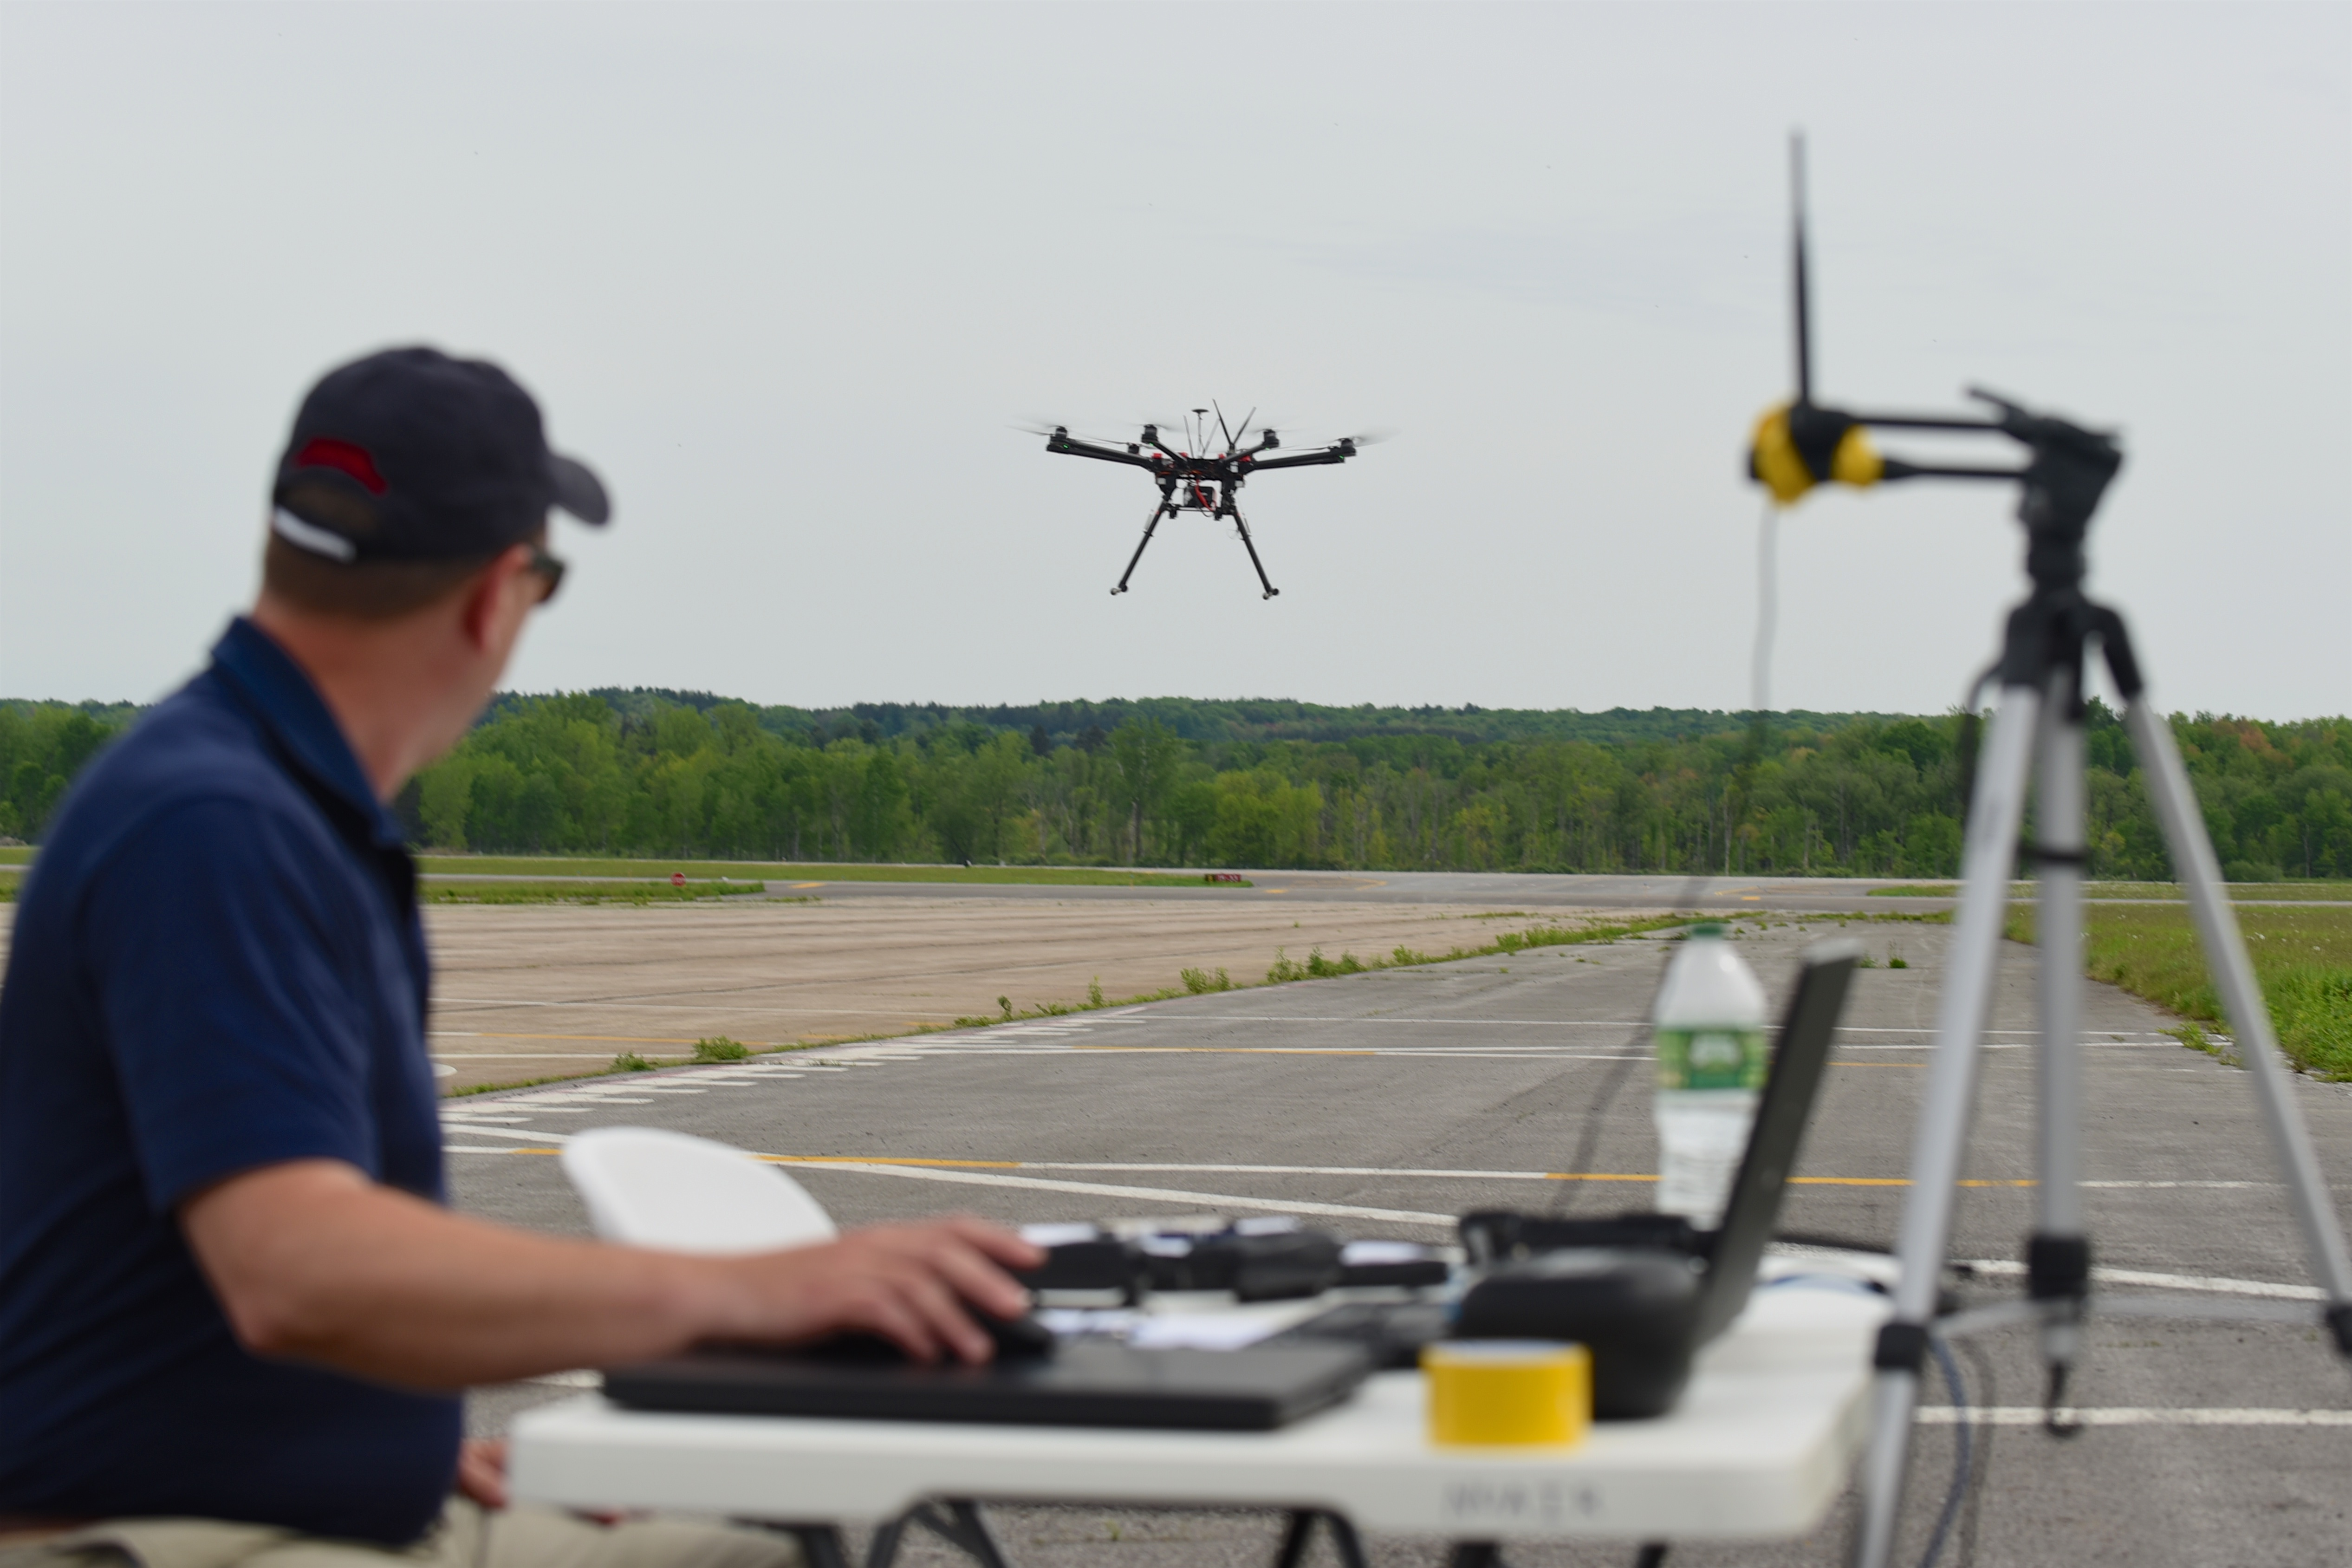 NASA Engineer testing a UAV (Unmanned Aerial Vehicle)